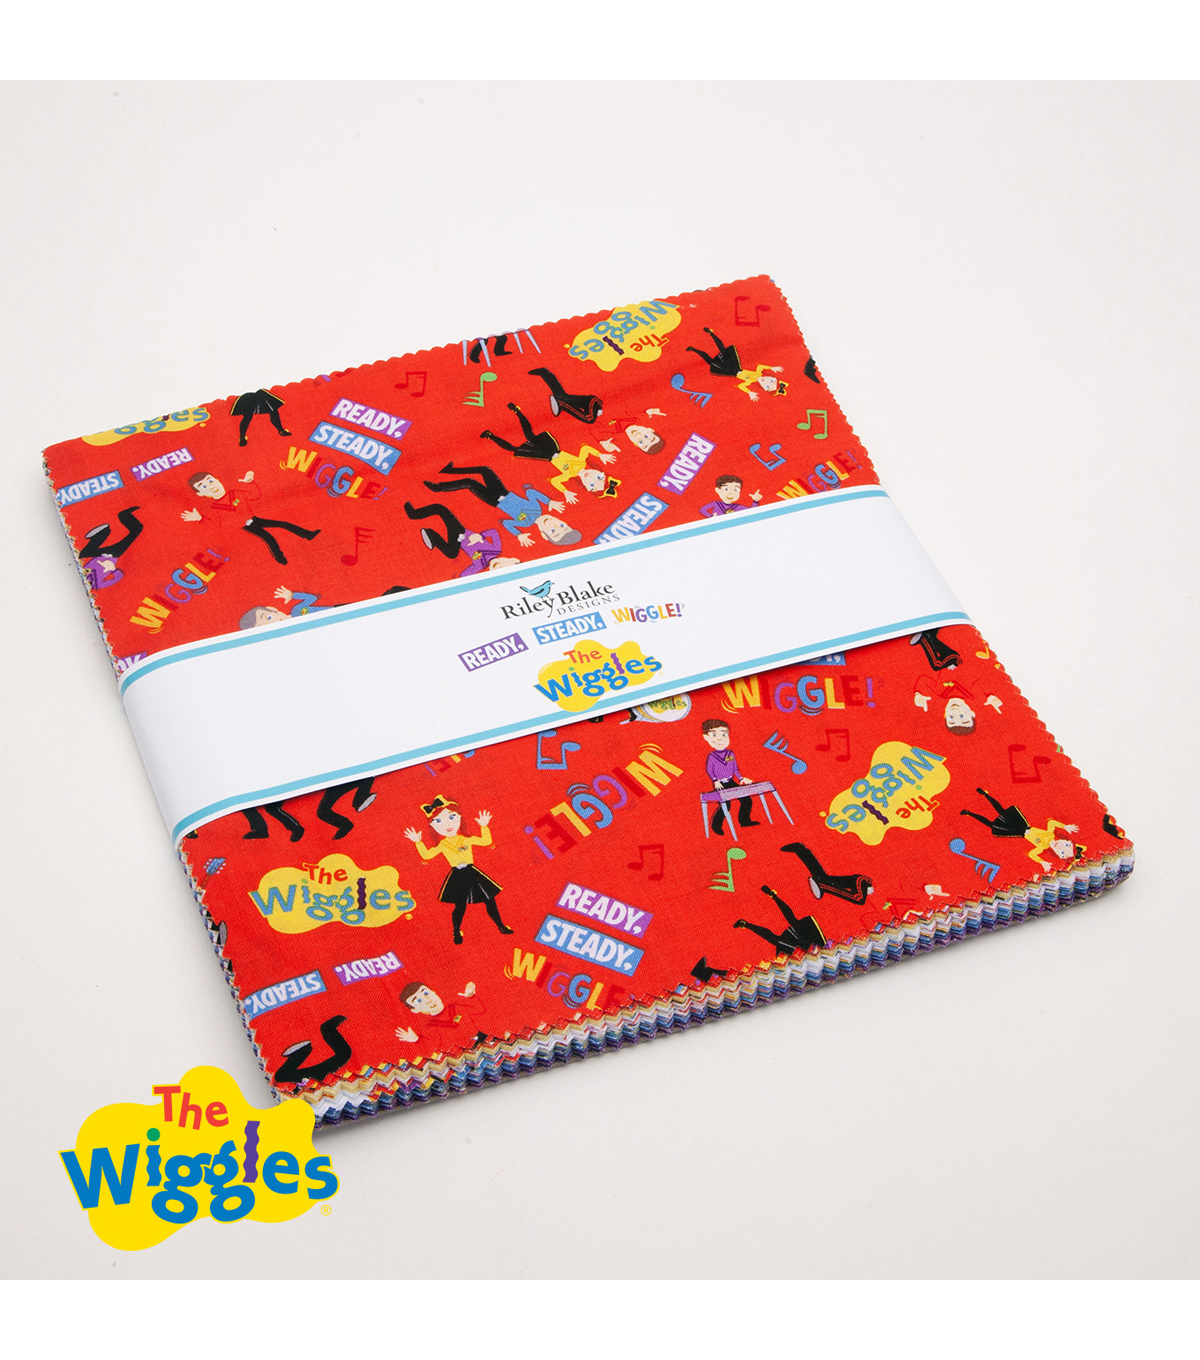 The Wiggles 10 Stackers by Riley Blake